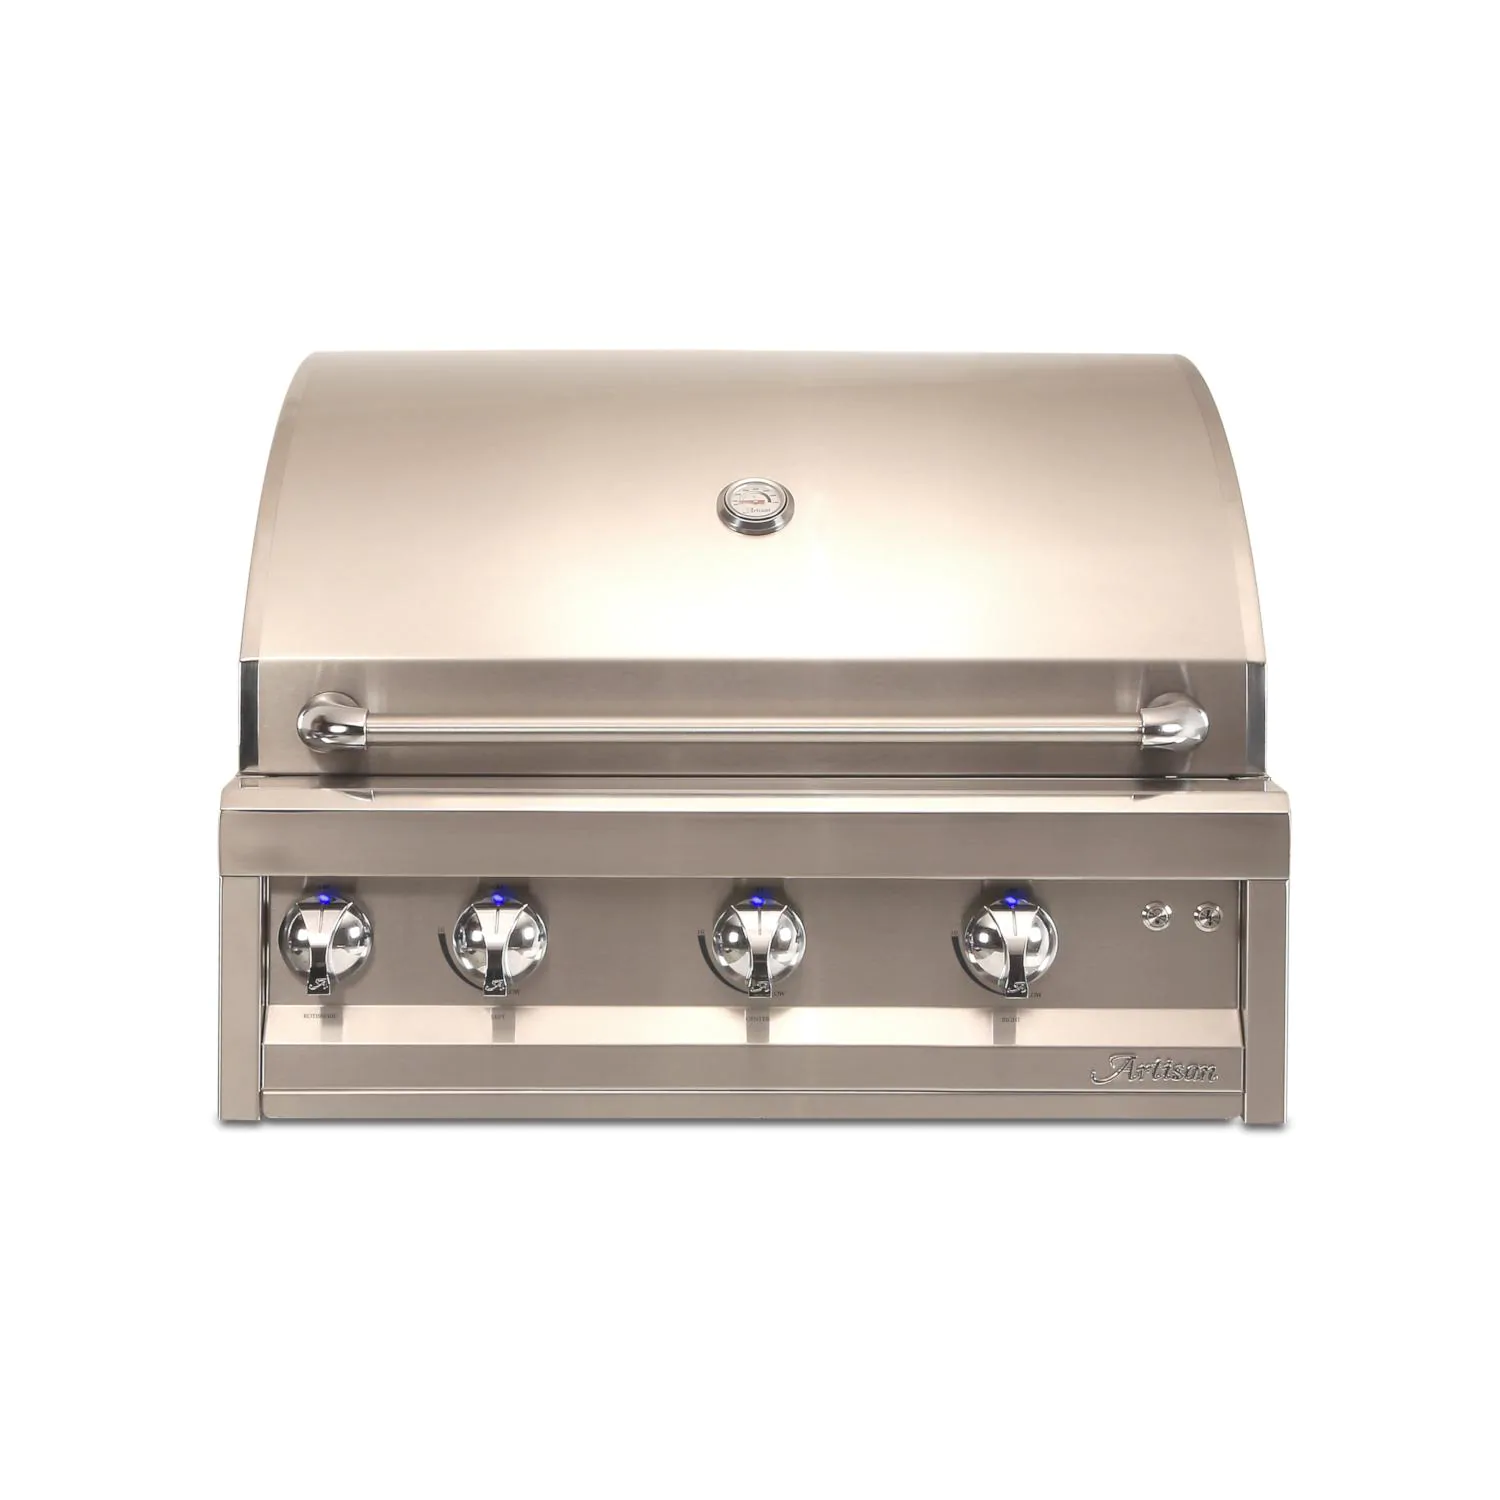 """Artisan Professional 32"""" 3-Burner Built-In Natural Gas Grill With Rotisserie - ARTP-32-NG"""